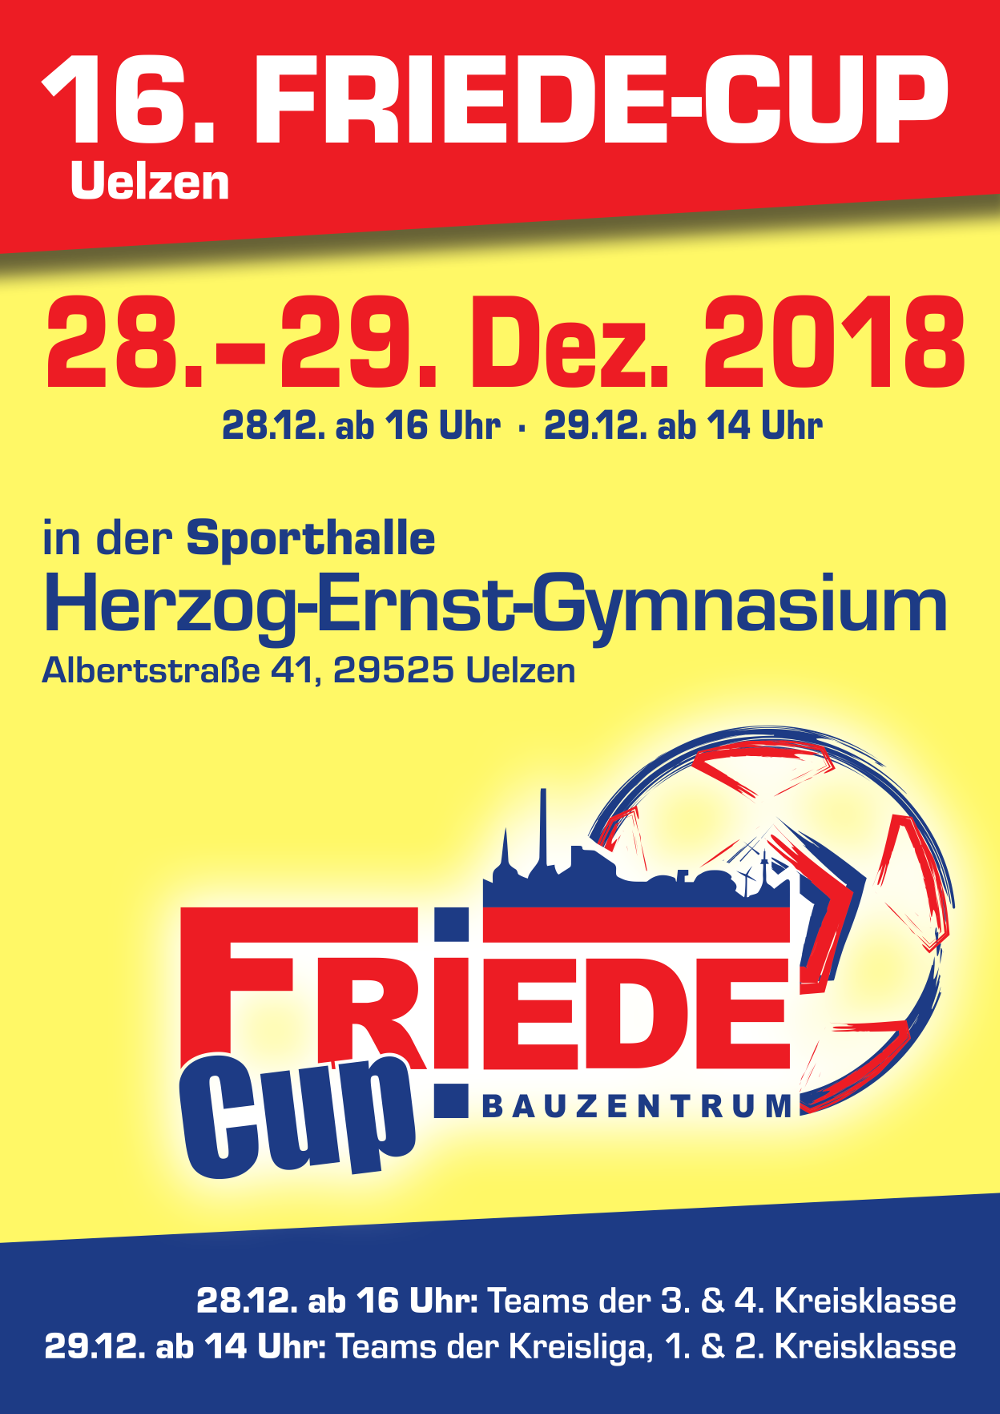 Friede Cup 2018_png.png